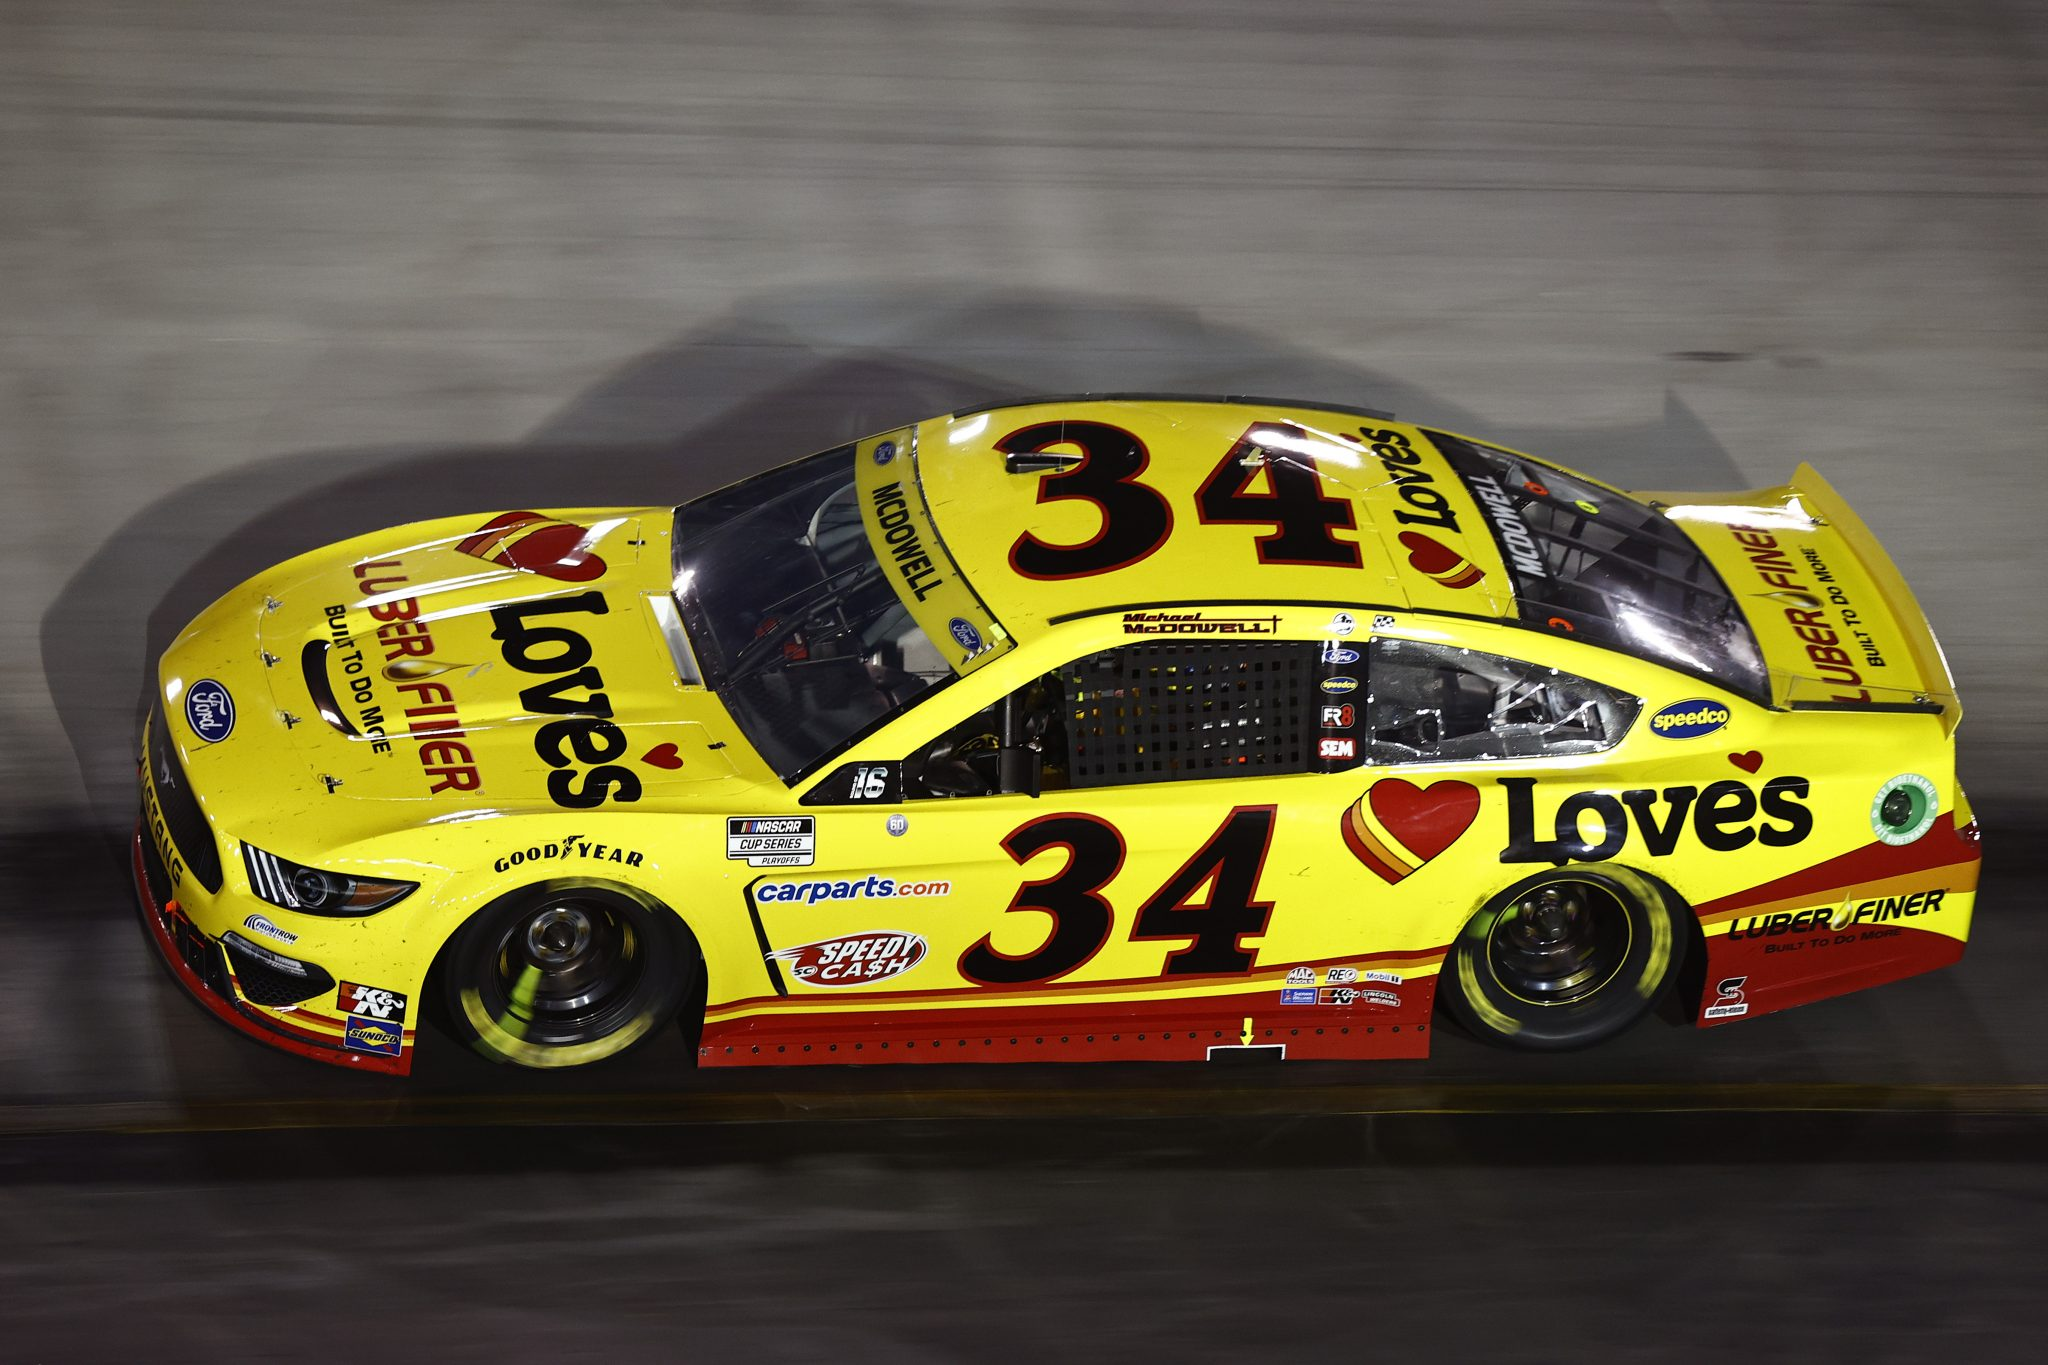 BRISTOL, TENNESSEE - SEPTEMBER 18: Michael McDowell, driver of the #34 Love's Travel Stops Ford, drives during the NASCAR Cup Series Bass Pro Shops Night Race at Bristol Motor Speedway on September 18, 2021 in Bristol, Tennessee. (Photo by Jared C. Tilton/Getty Images) | Getty Images